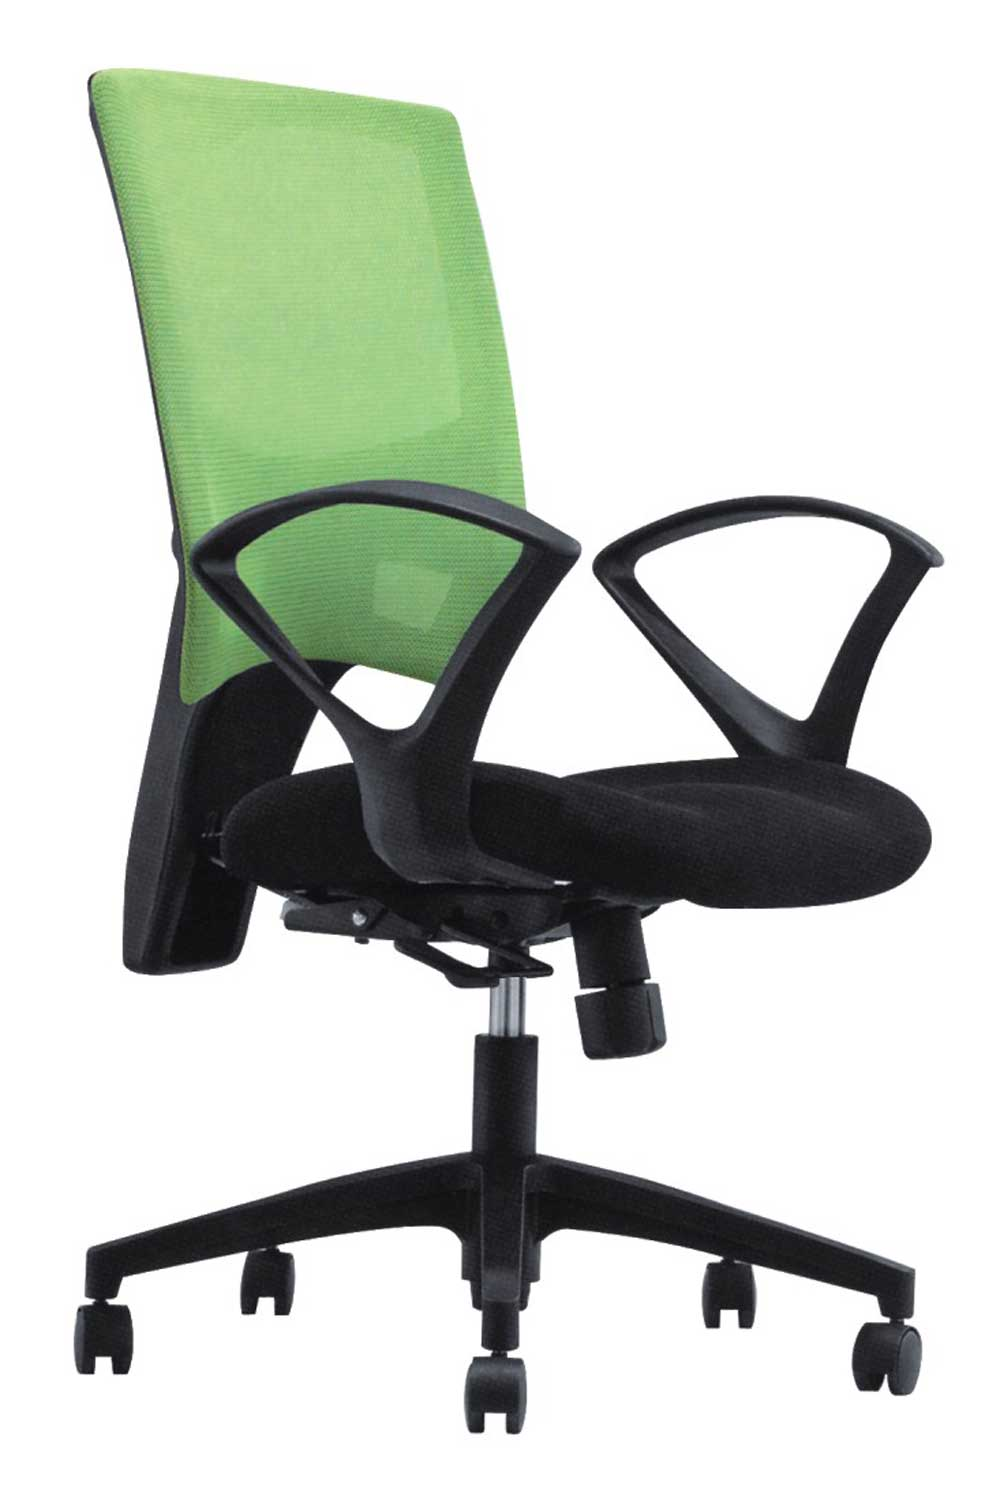 unique office chair design for office